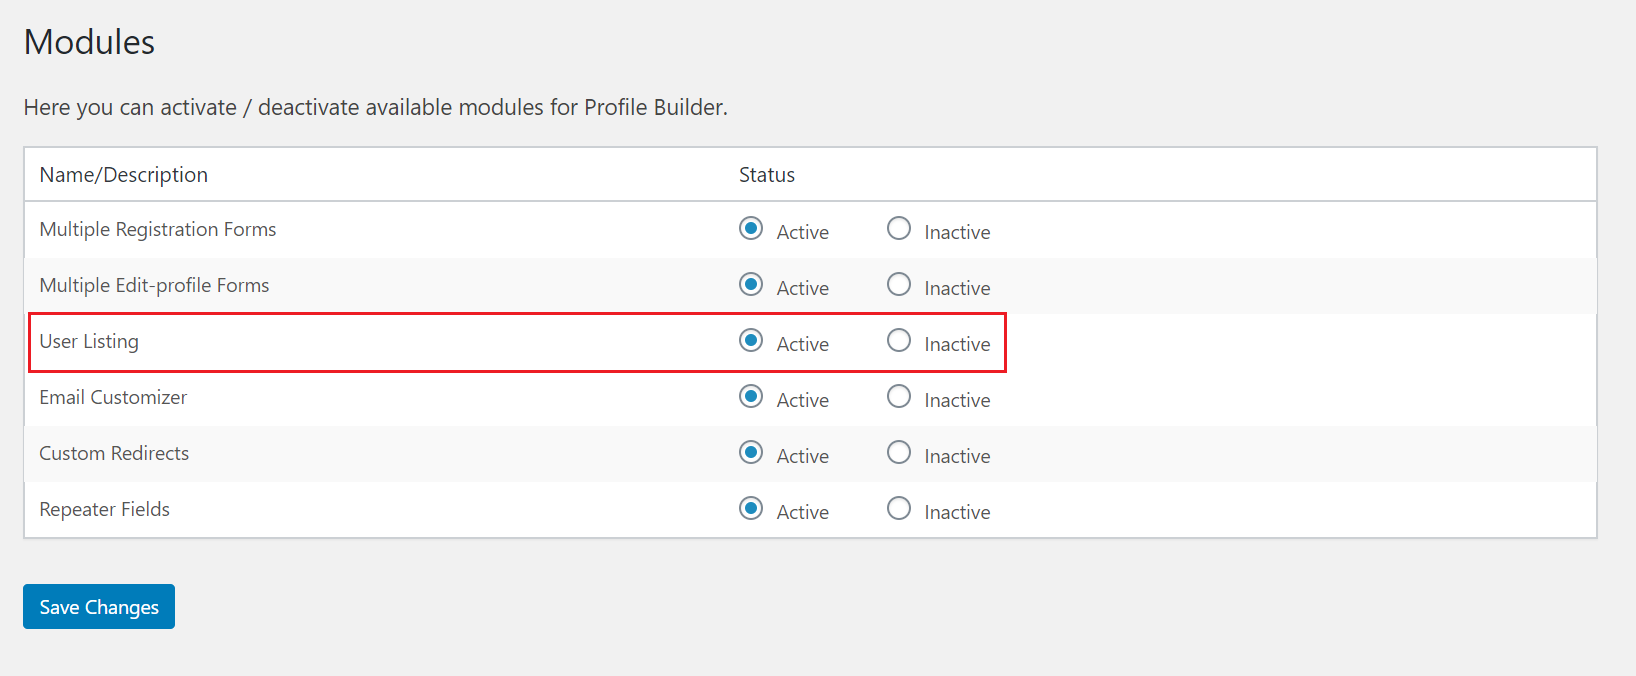 Activate user listing module